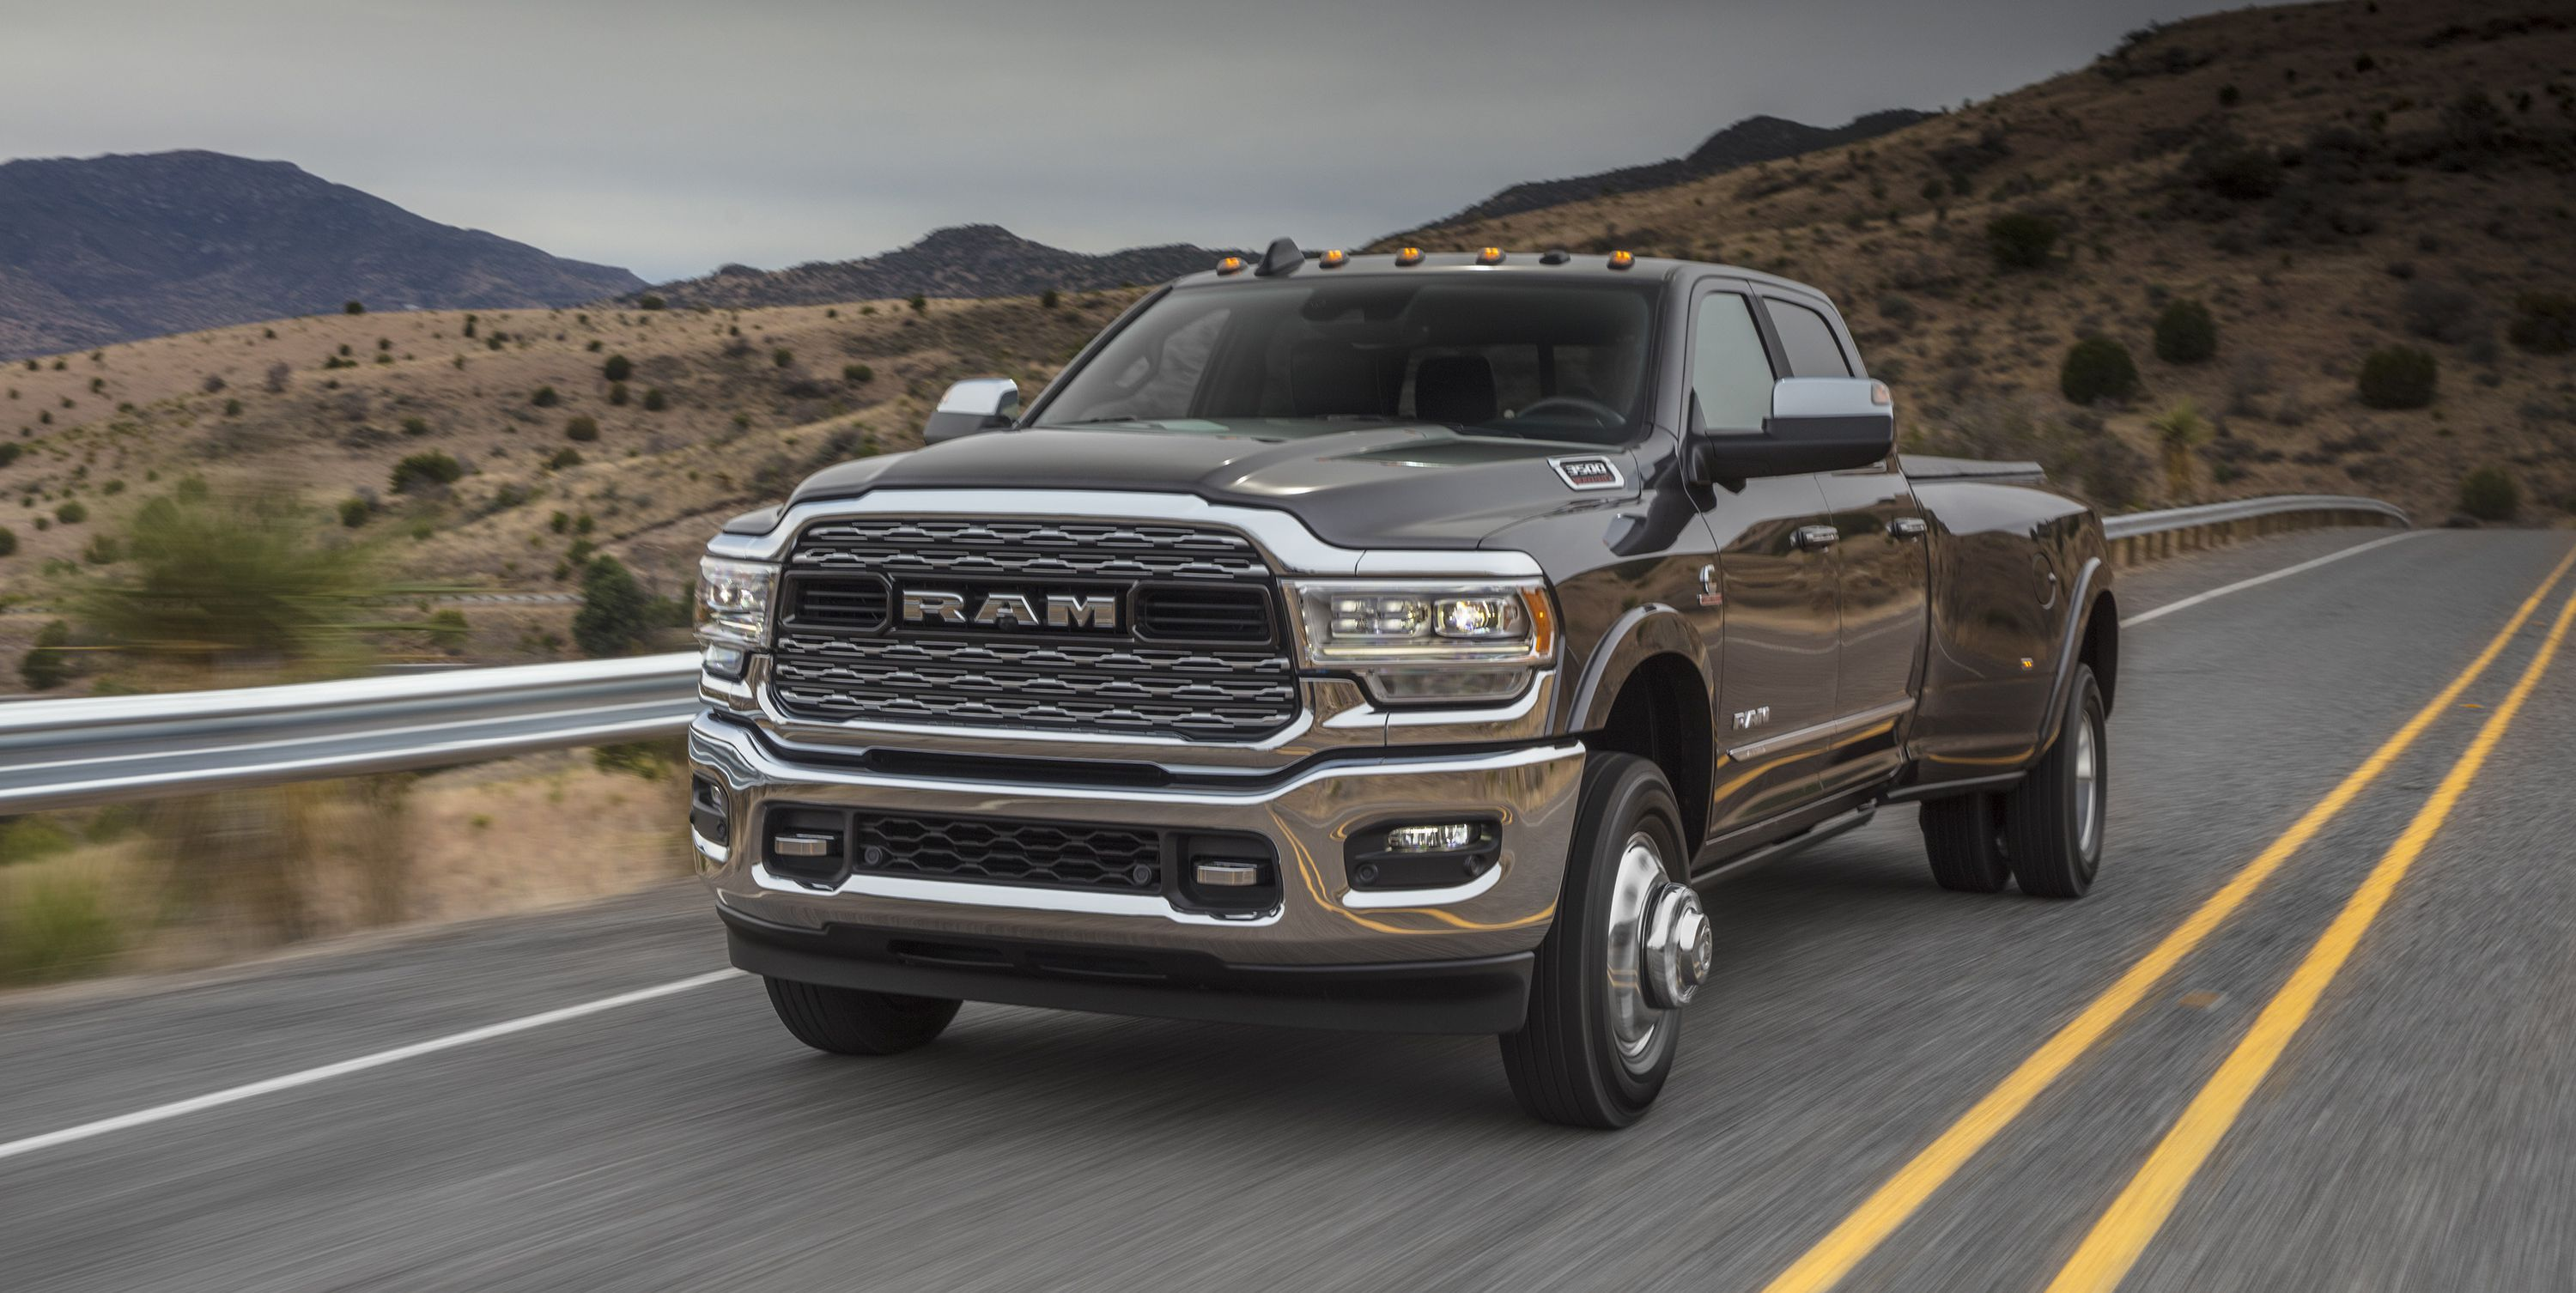 18 Best 2019 Dodge Ram 2500 Cummins Price Design and Review